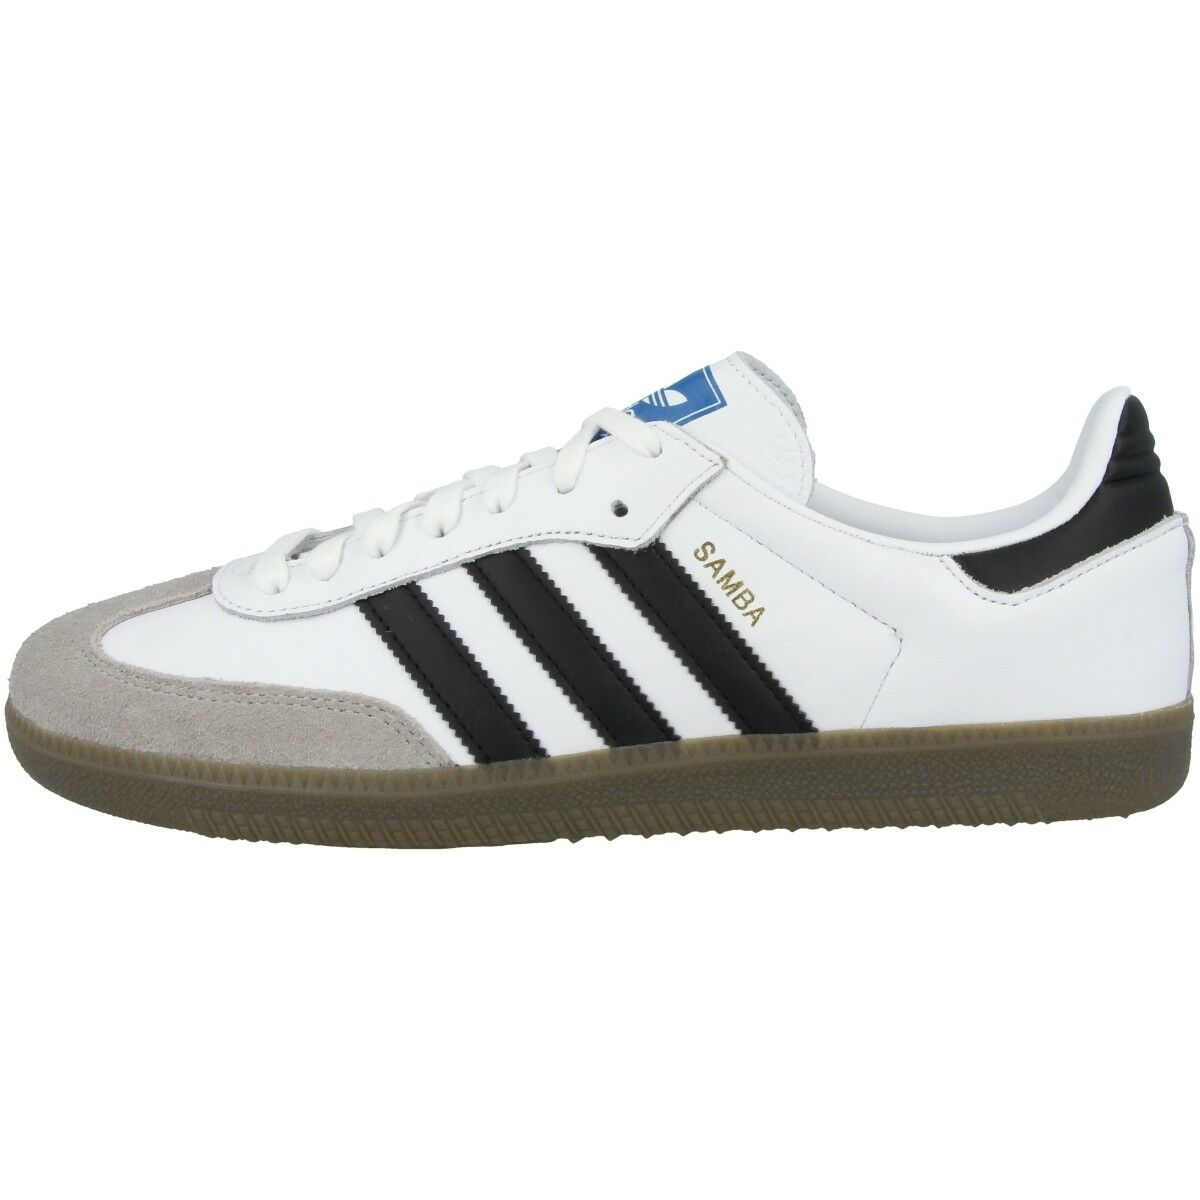 Adidas Samba Og shoes Original Trainers Sport Casual Sneakers White B75806